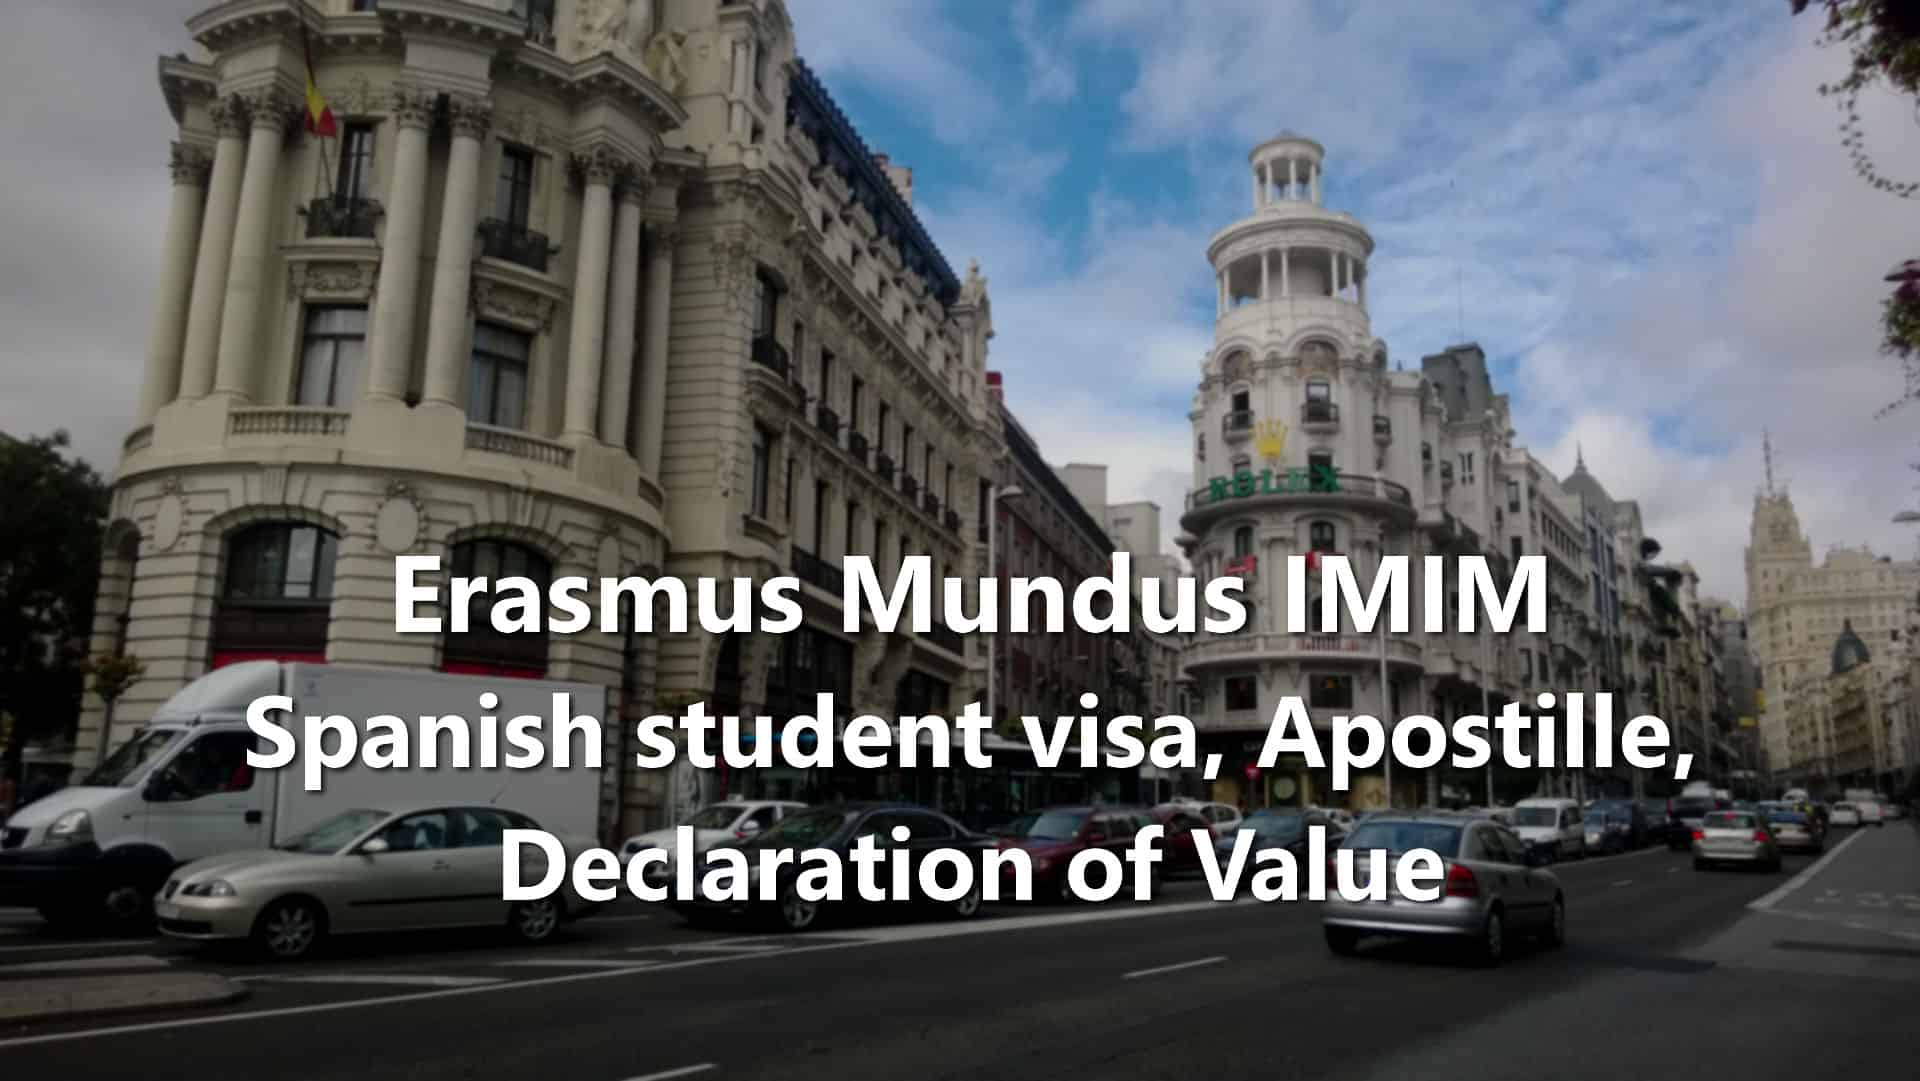 Erasmus Mundus IMIM Spanish student visa, Apostille, Declaration of Value